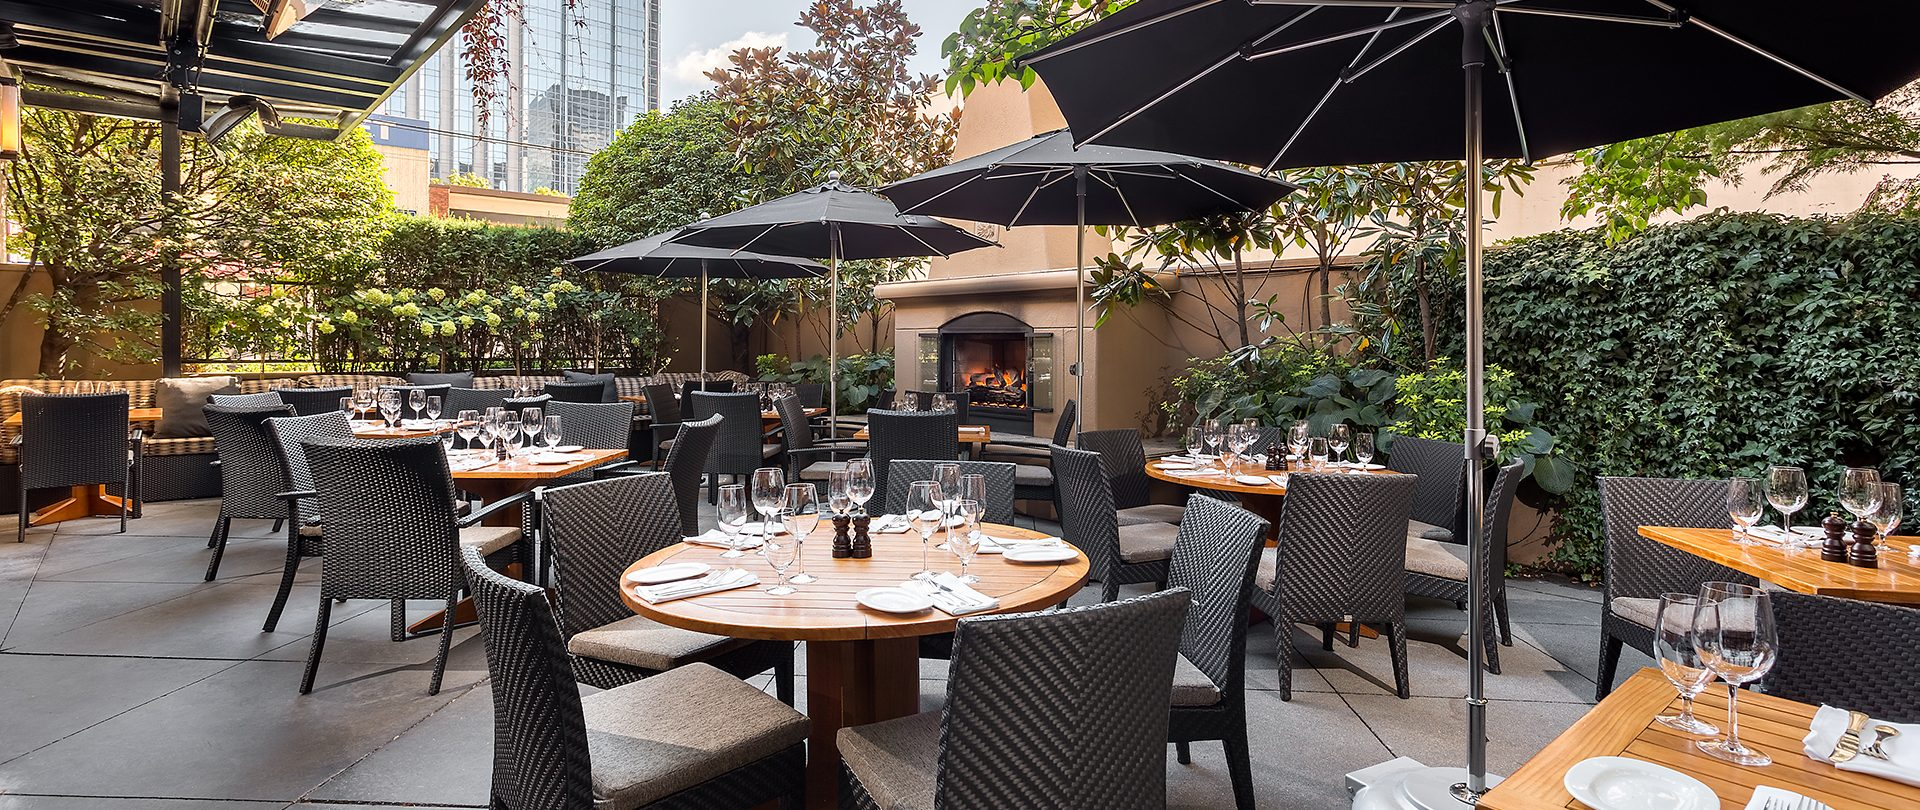 Gotham's patio is now open for lunch, dinner, and a new Social Hour al fresco